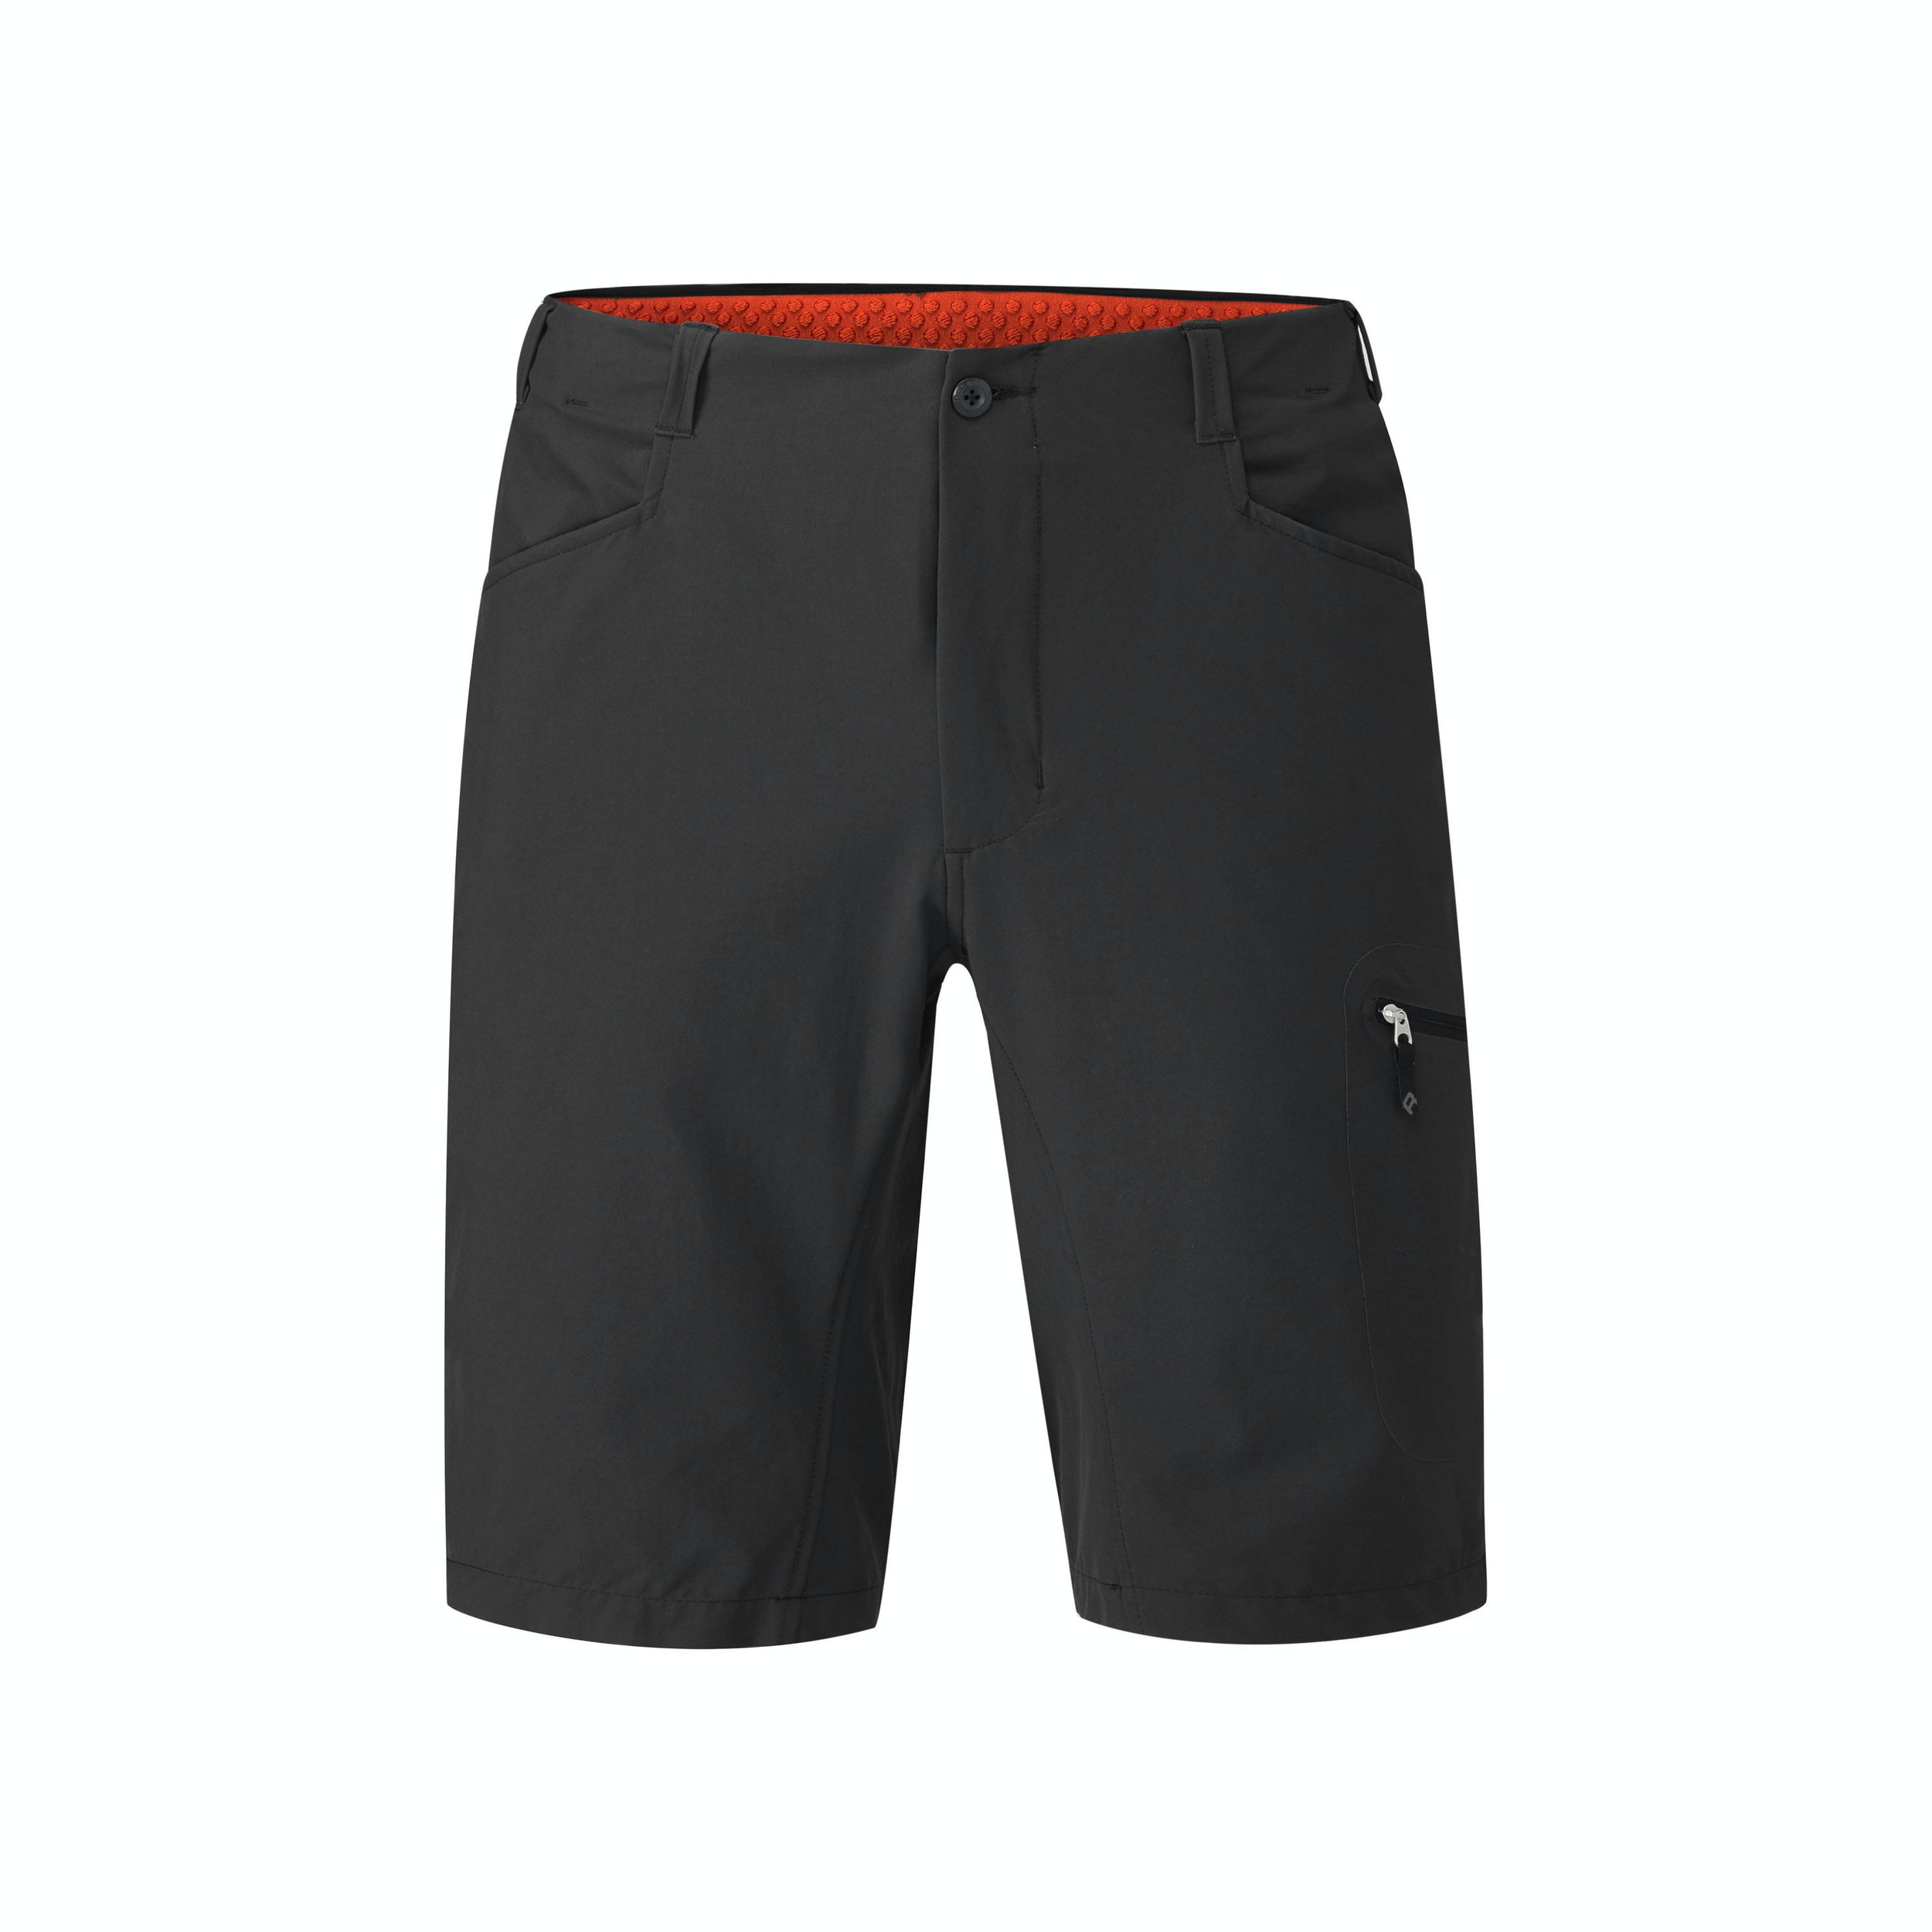 Mens Travel Shorts, Mens Outdoor shorts by Rohan